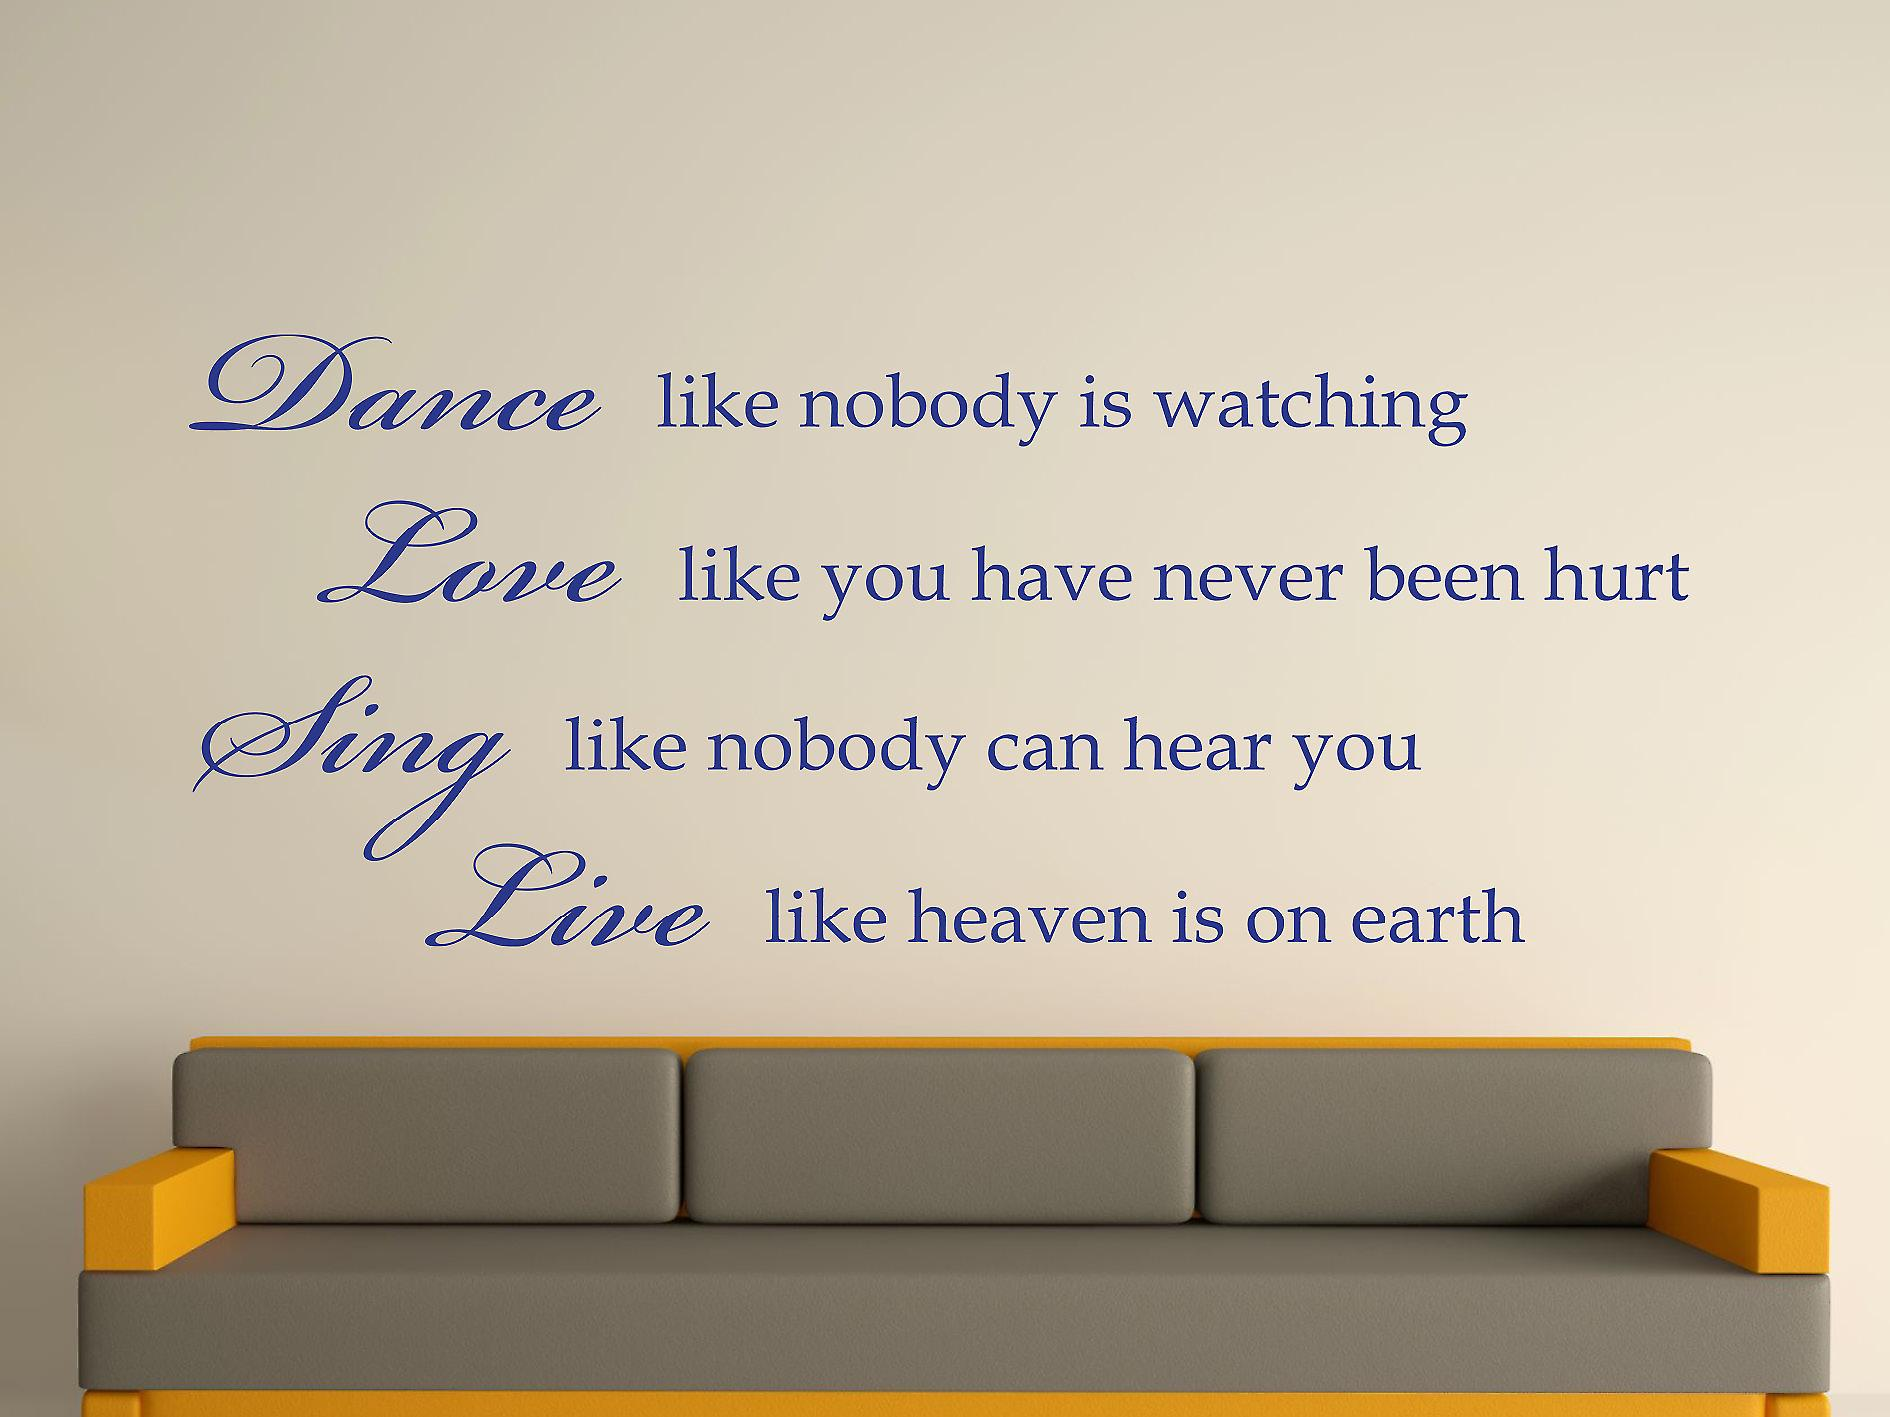 Dance Like Nobody Is Watching Wall Art Sticker - Dark Blue